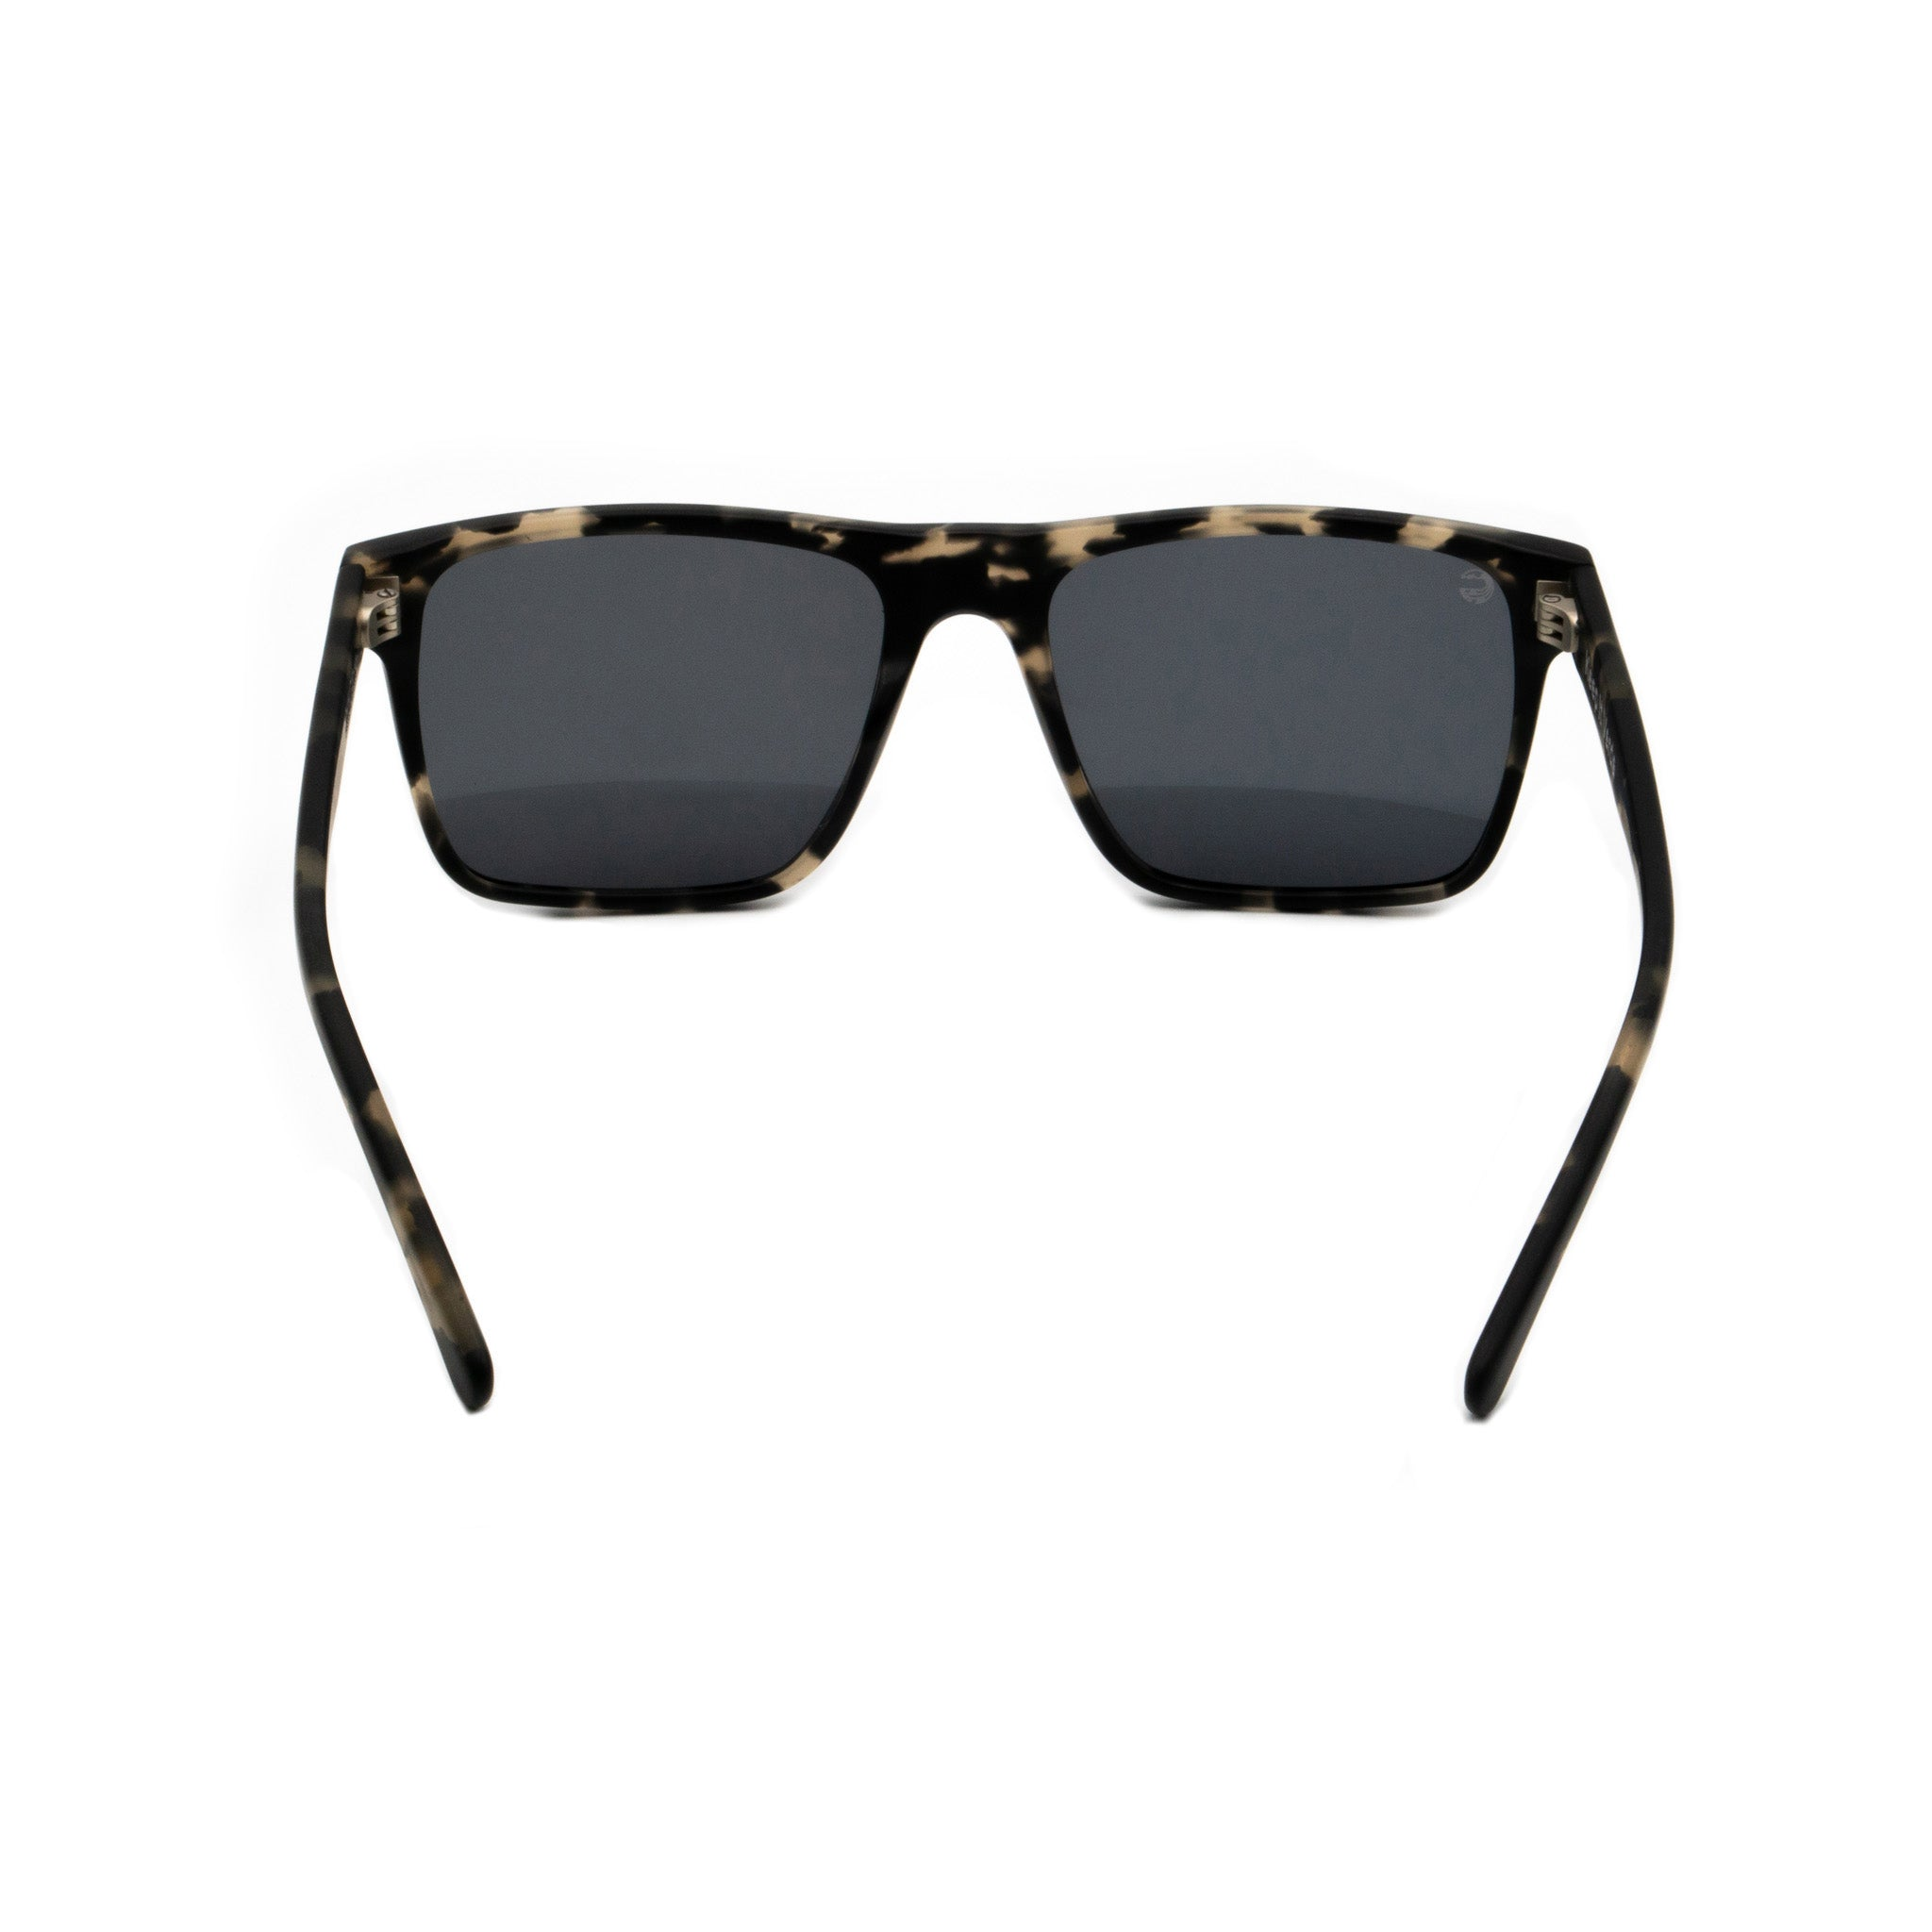 Big Sur in Matte Black Tortoise